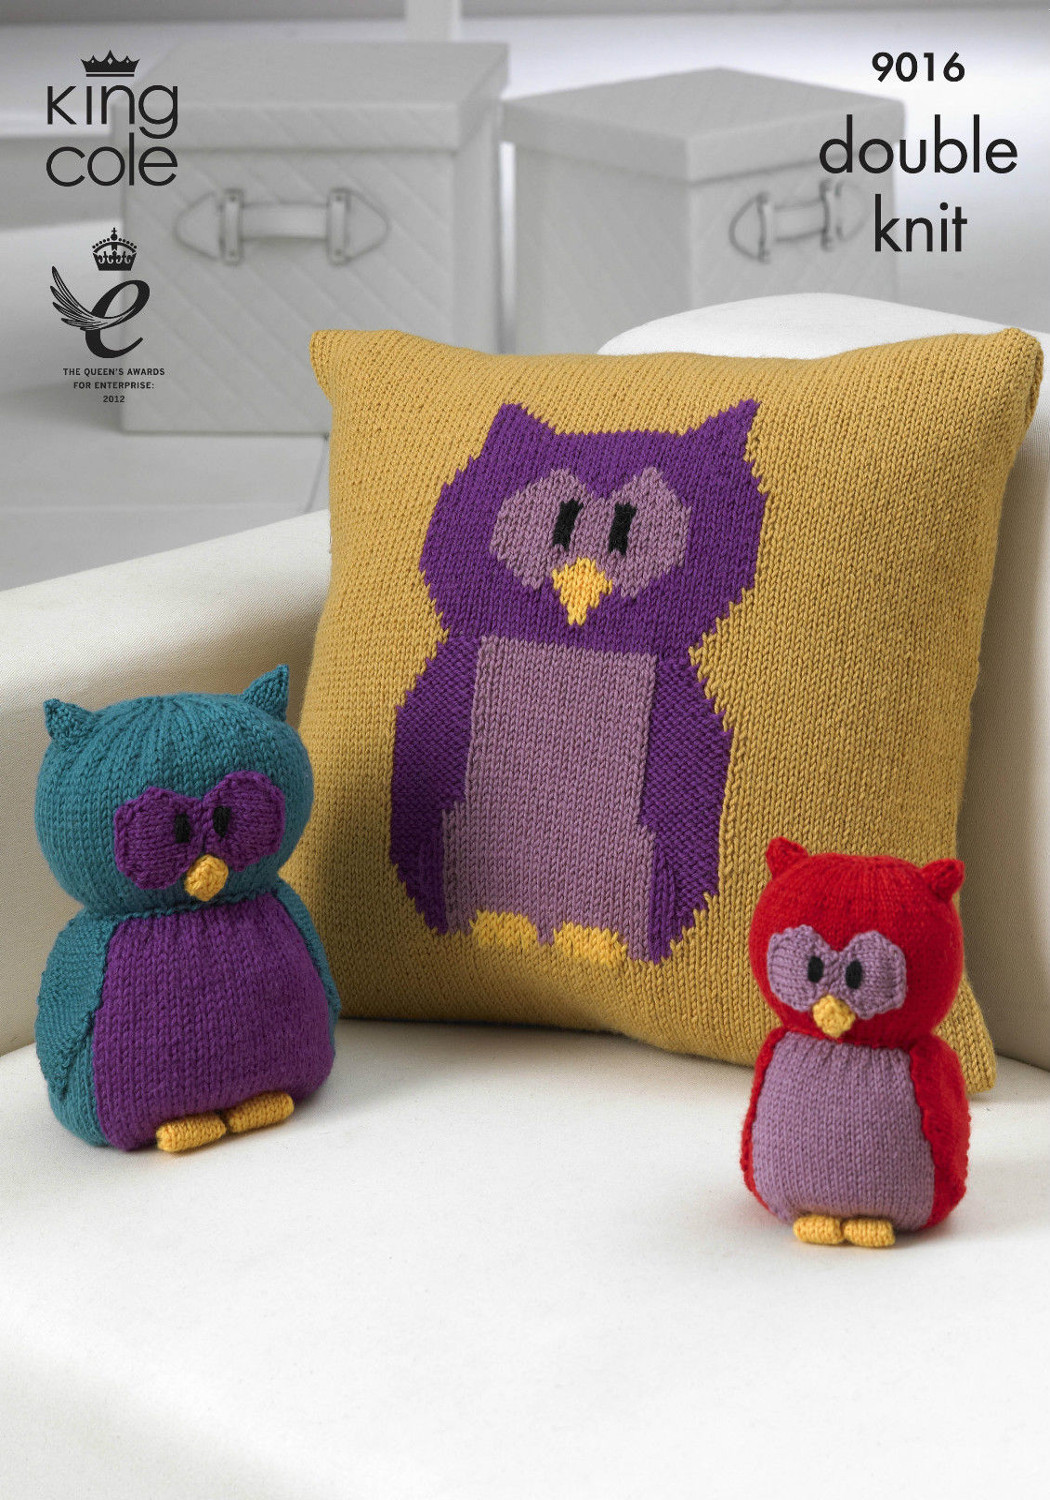 Double Knit DK Knitting Pattern King Cole Owl Cushion Cover Toy ...